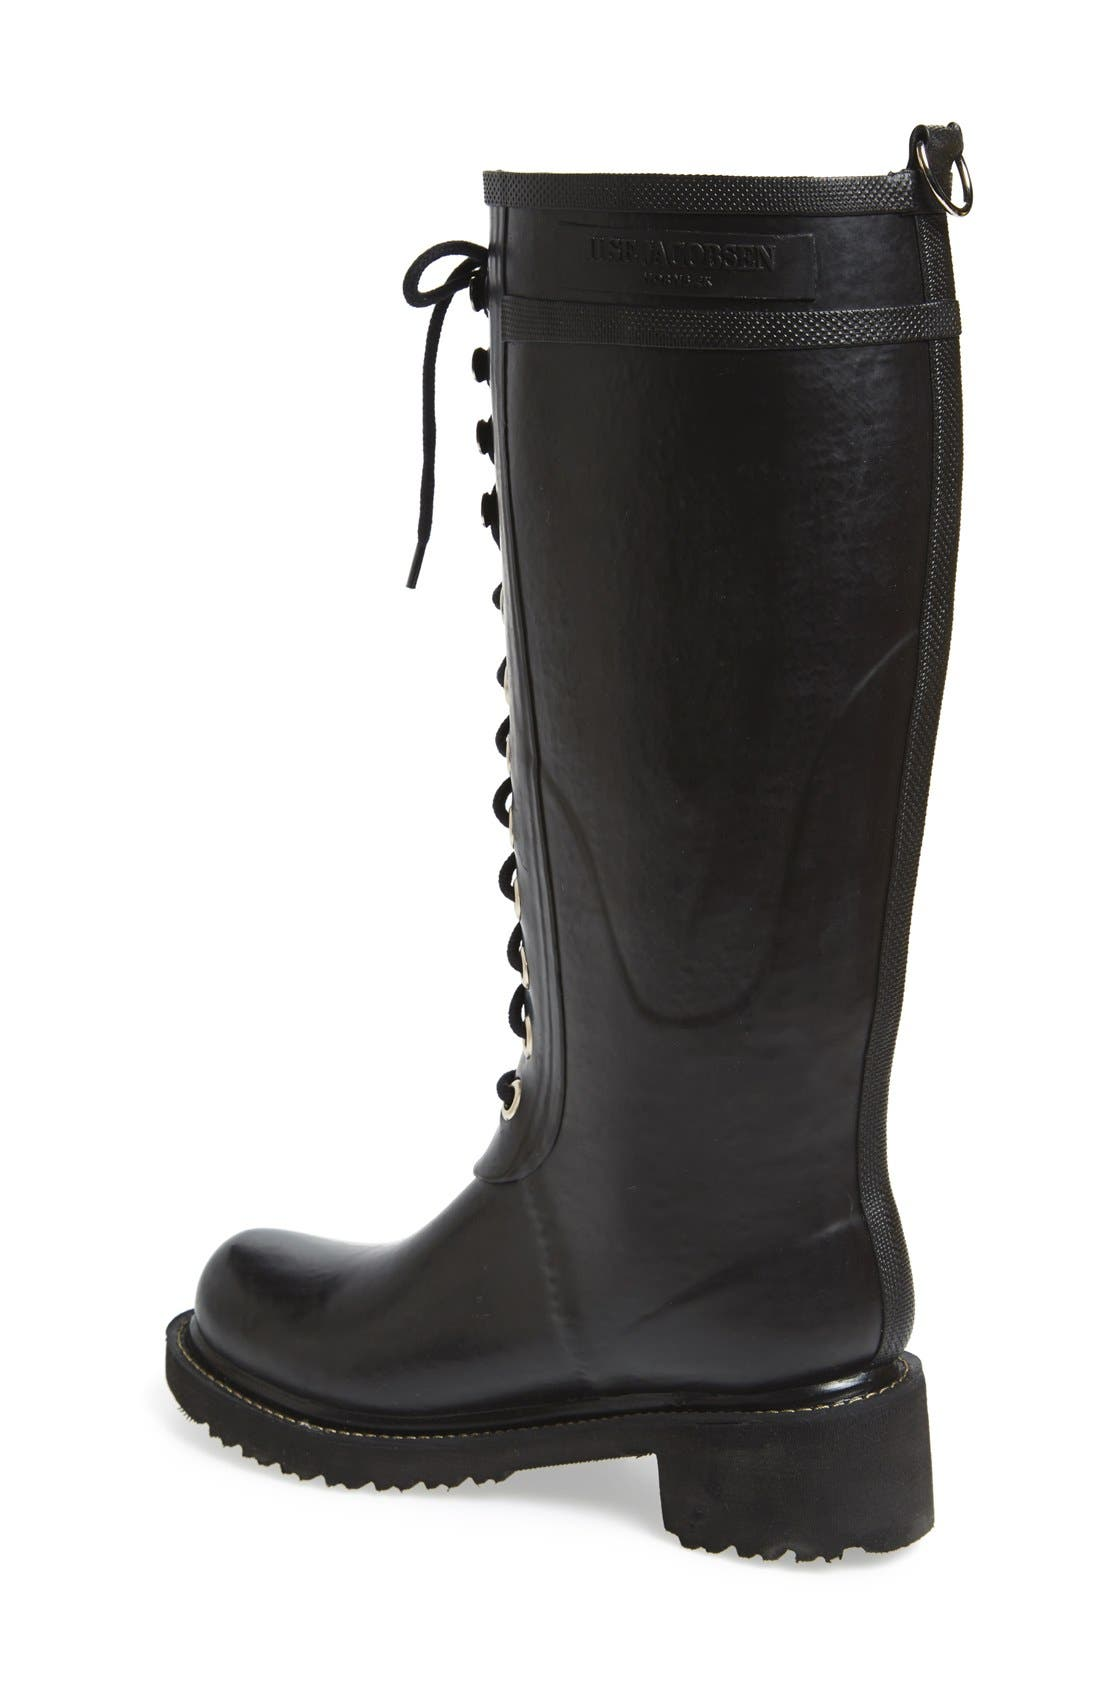 Alternate Image 2  - Ilse Jacobsen Waterproof Lace-Up Snow/Rain Boot (Women)